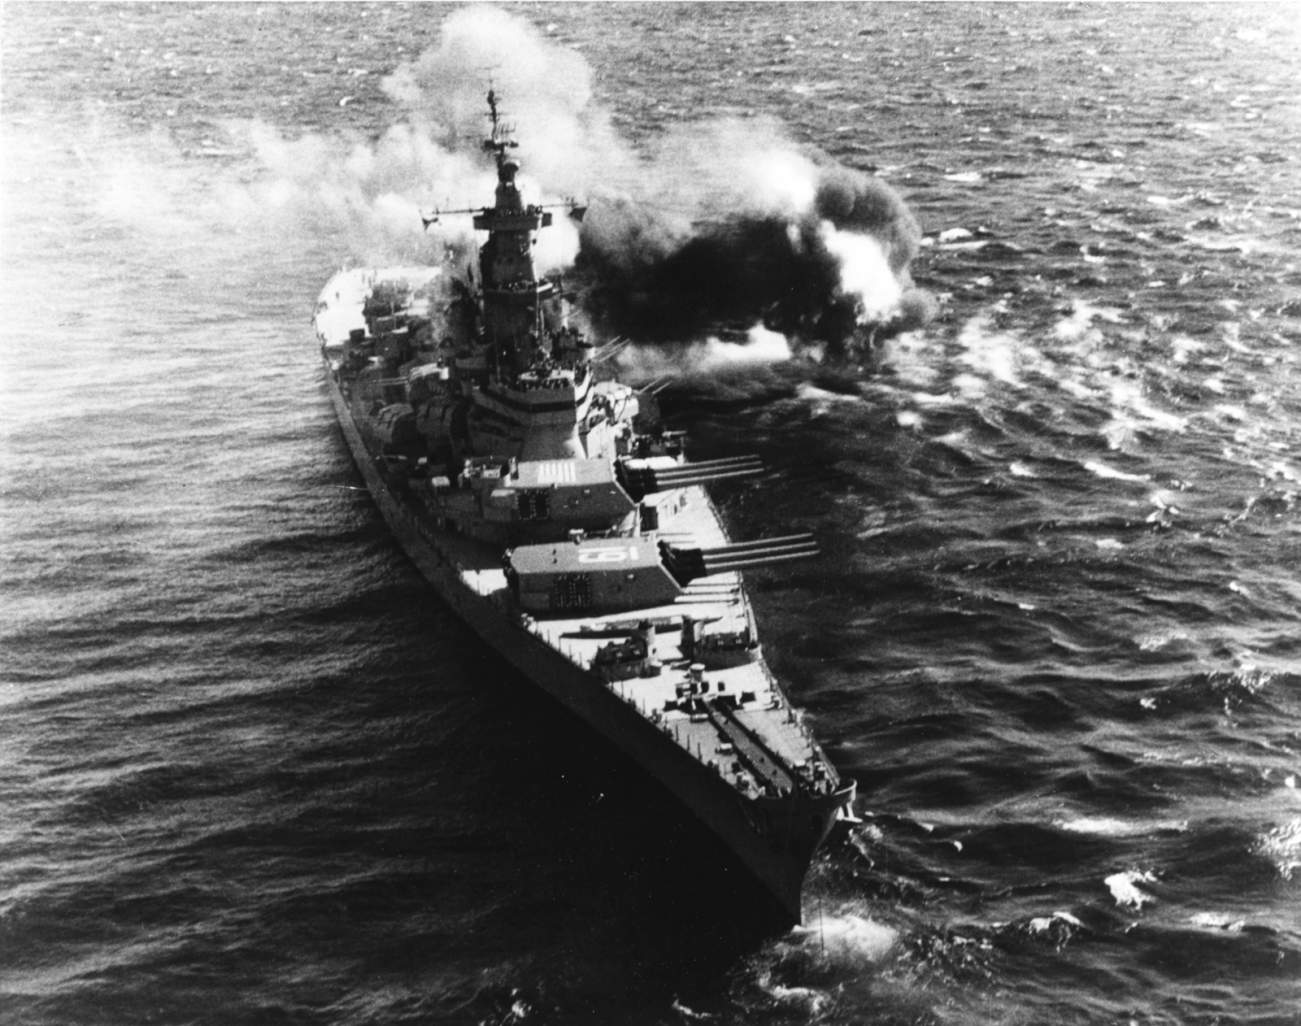 No Bullets? Just One More Reason Why America's Battleships Are Gone For Good